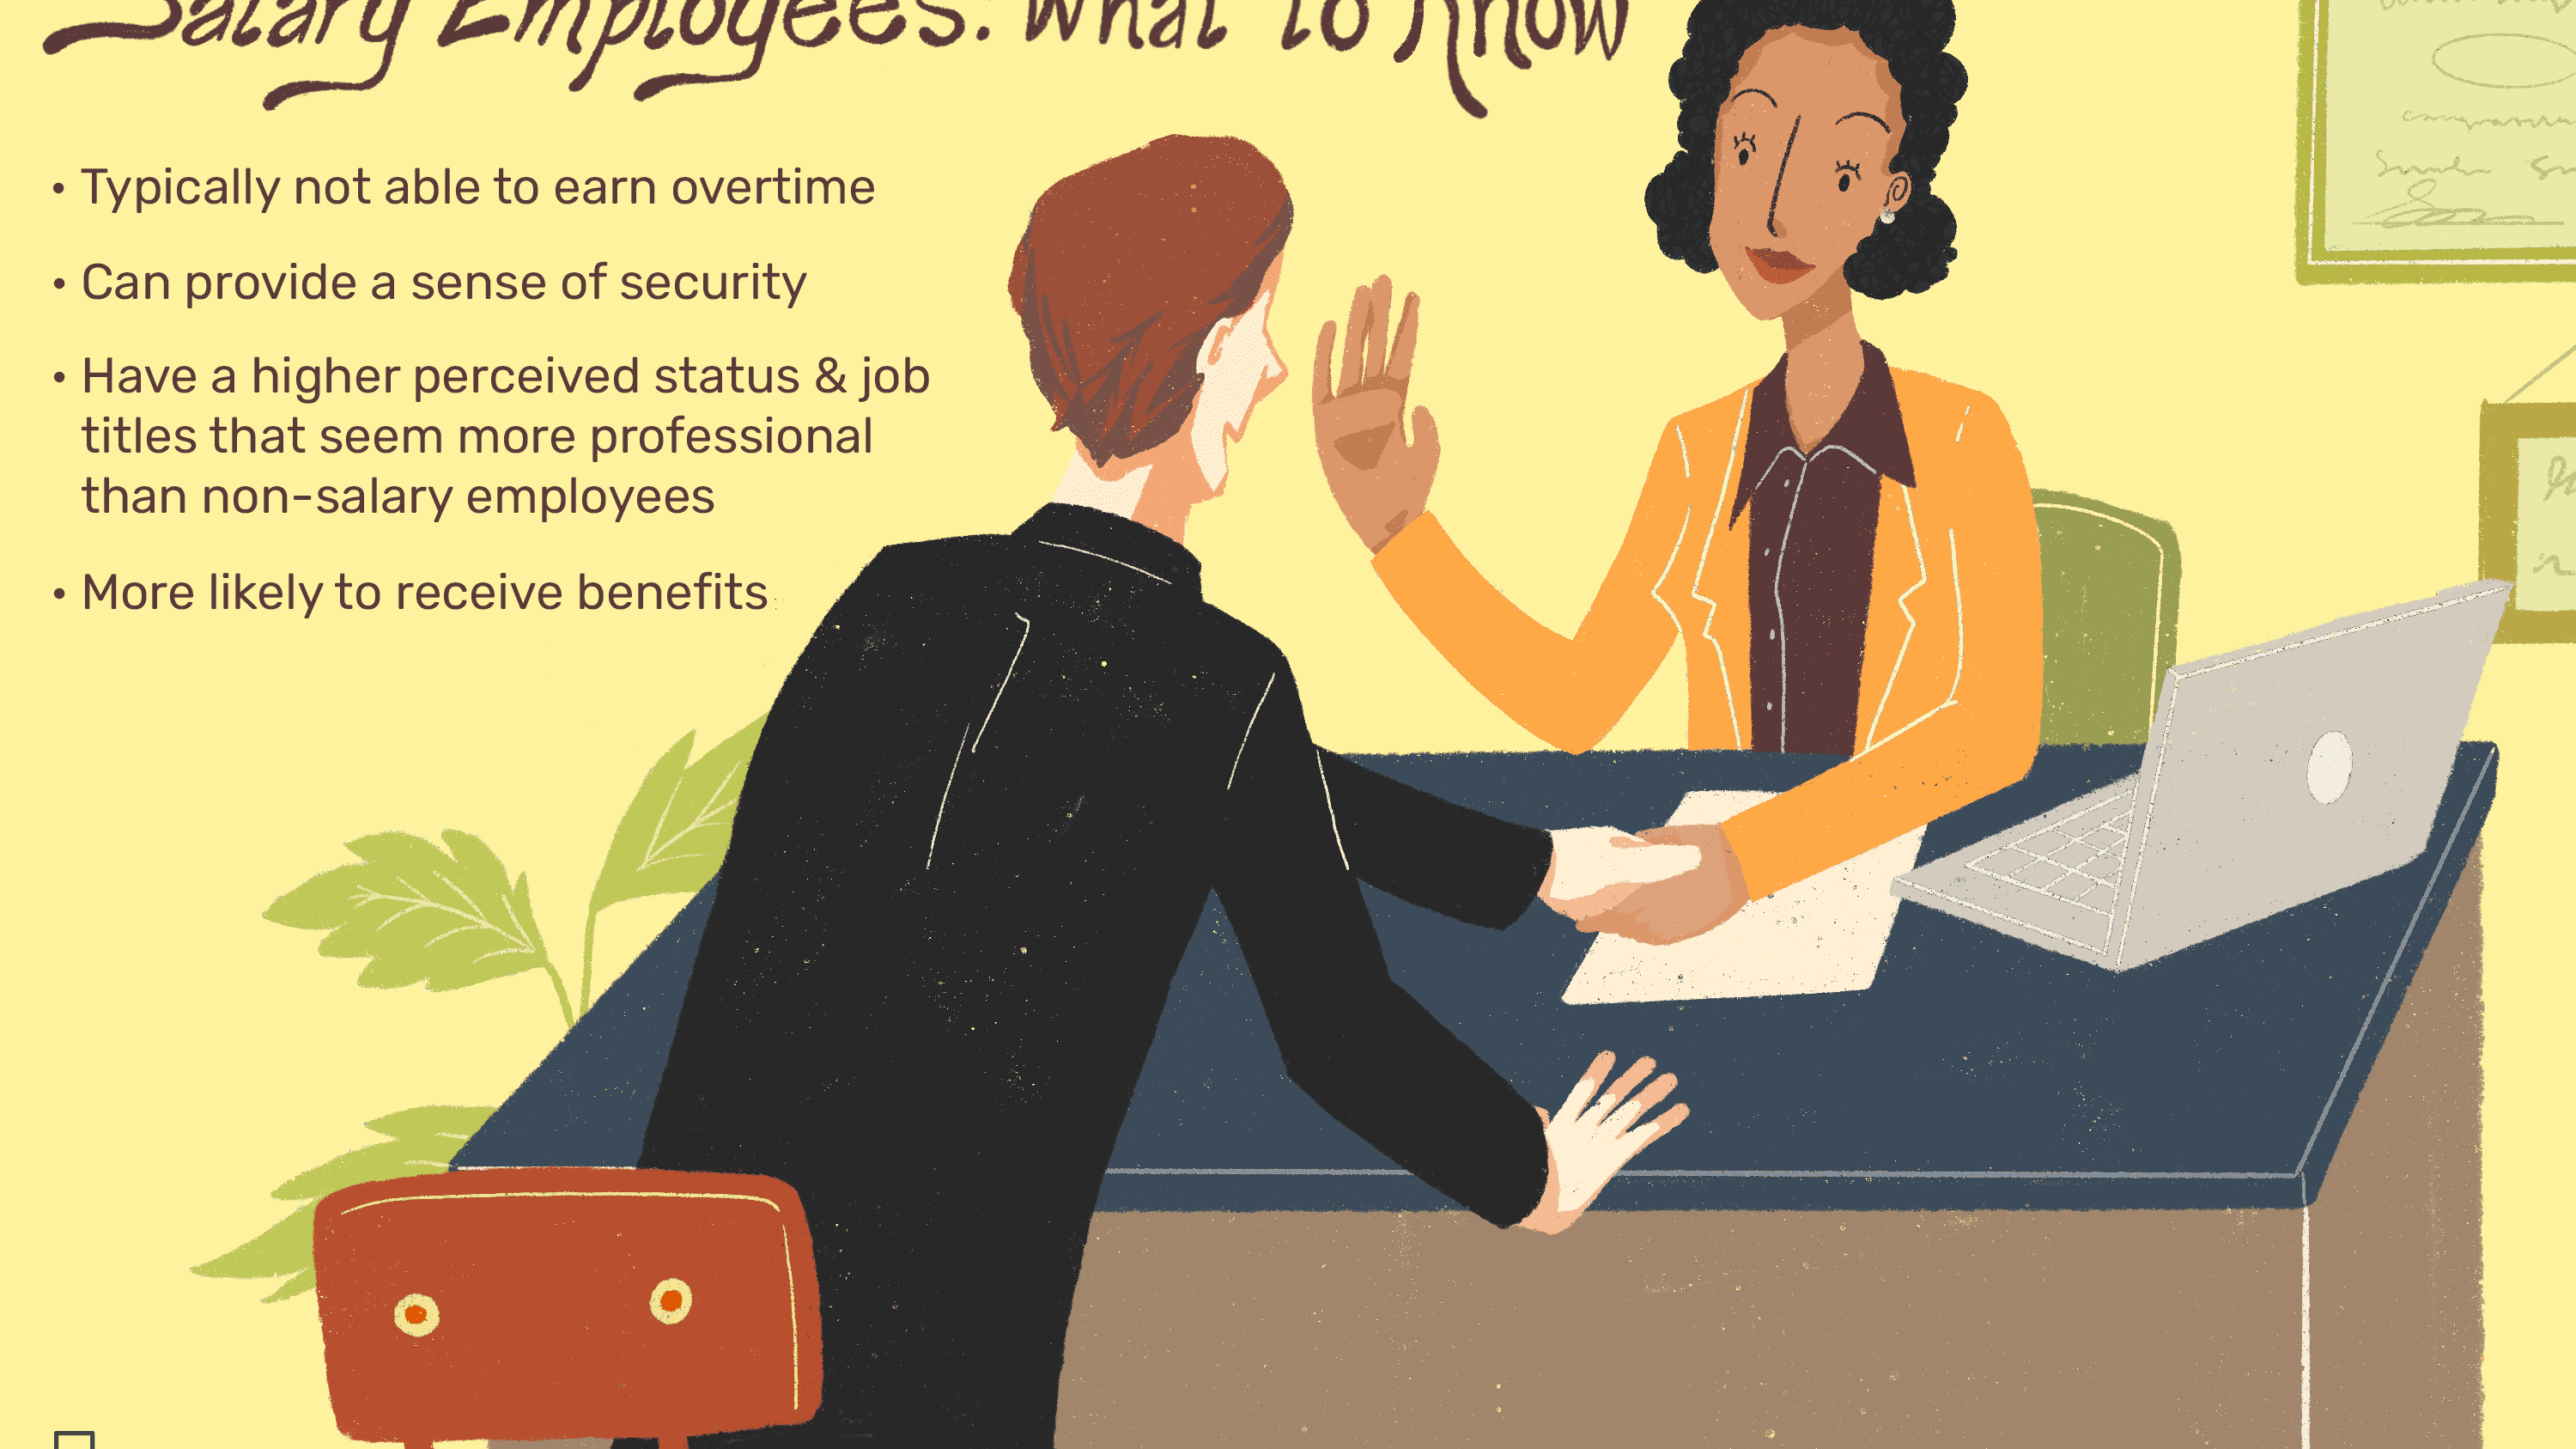 What is a Salary Employee?